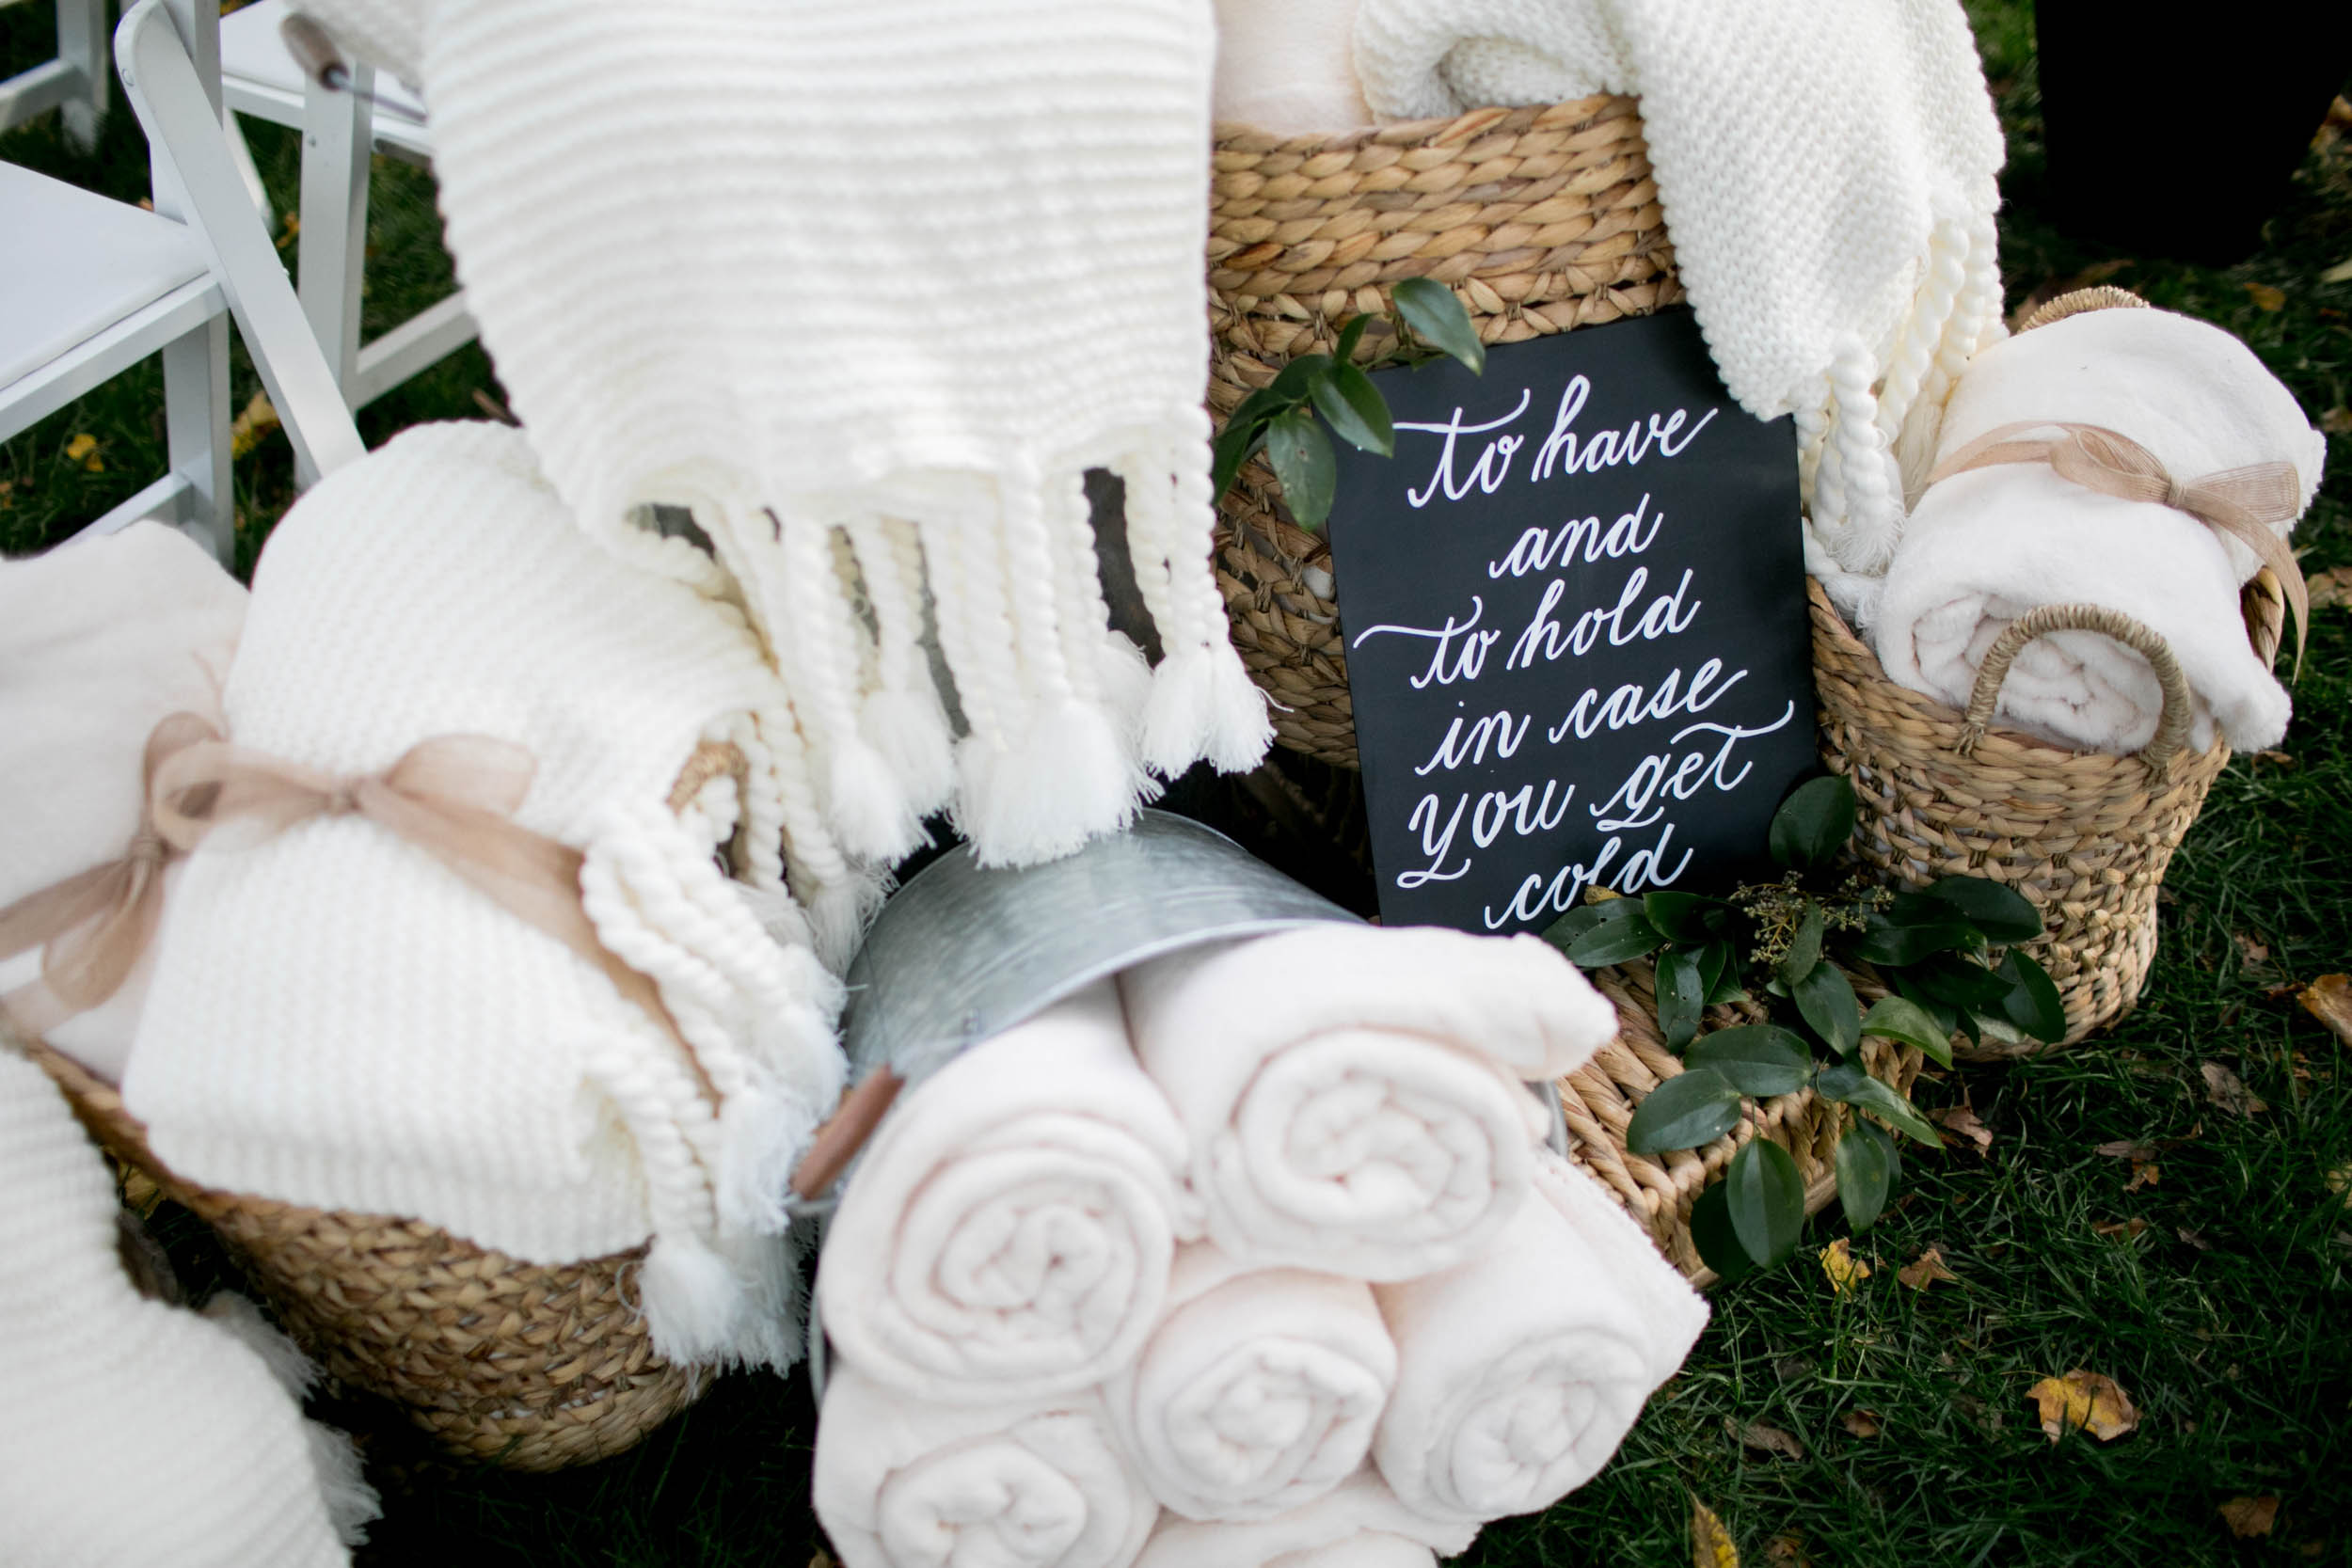 custom wedding planners ann arbor michigan event design paper goods florals fall blankets